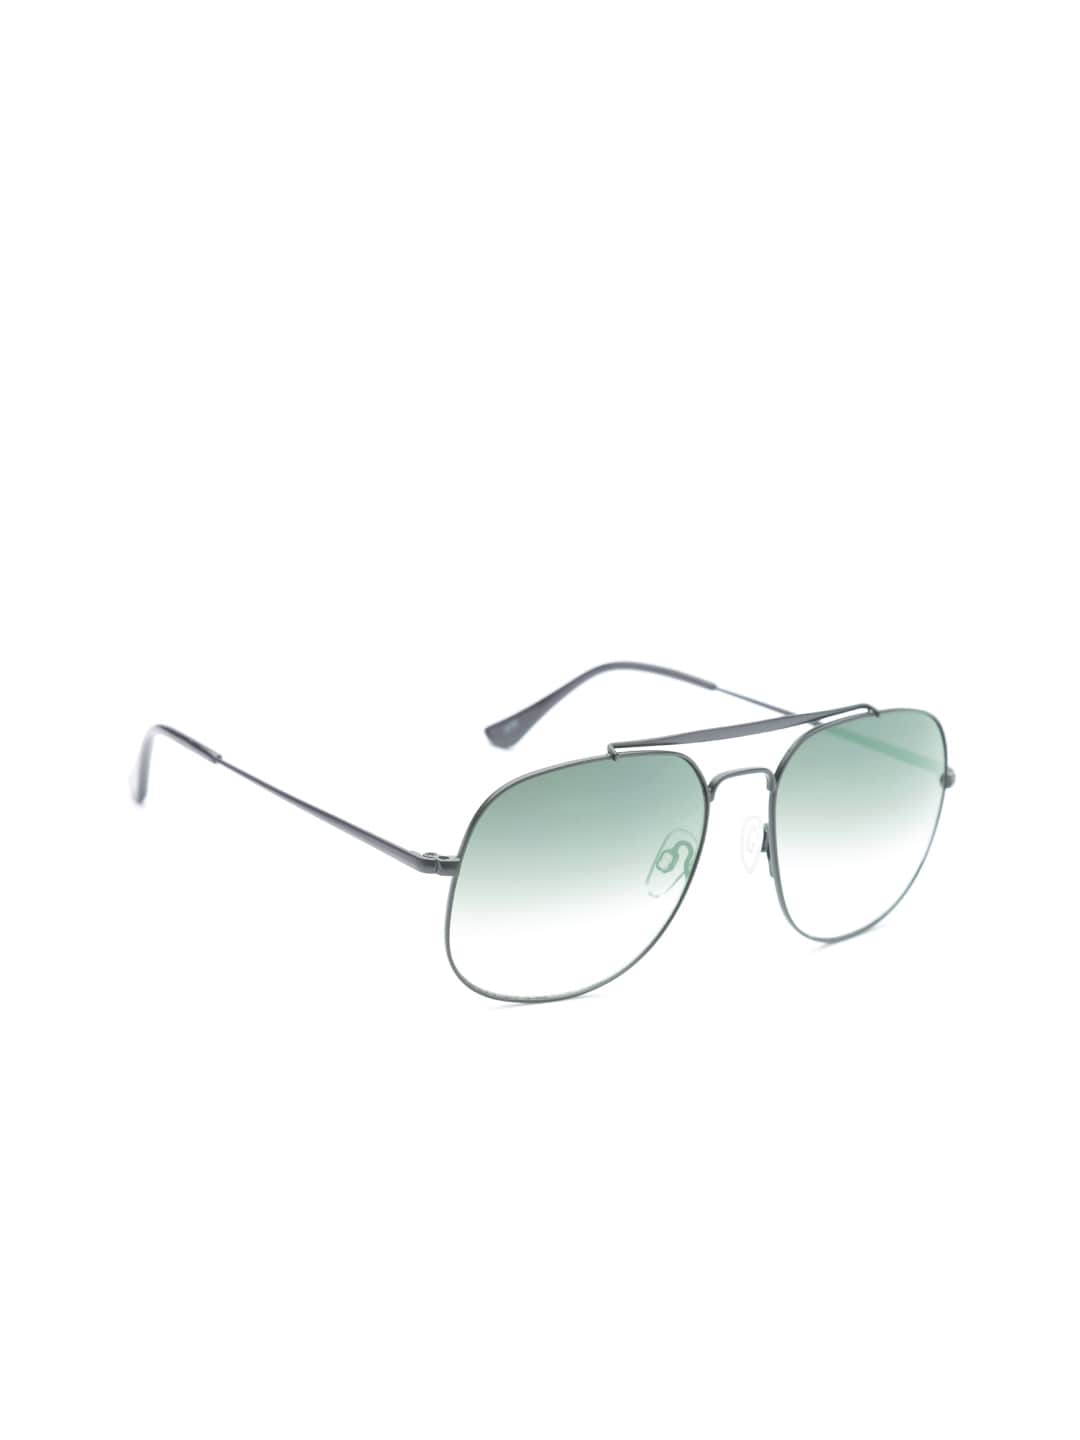 8adfa097e2 Men s Eyewear - Buy Eyewear for Men Online in India